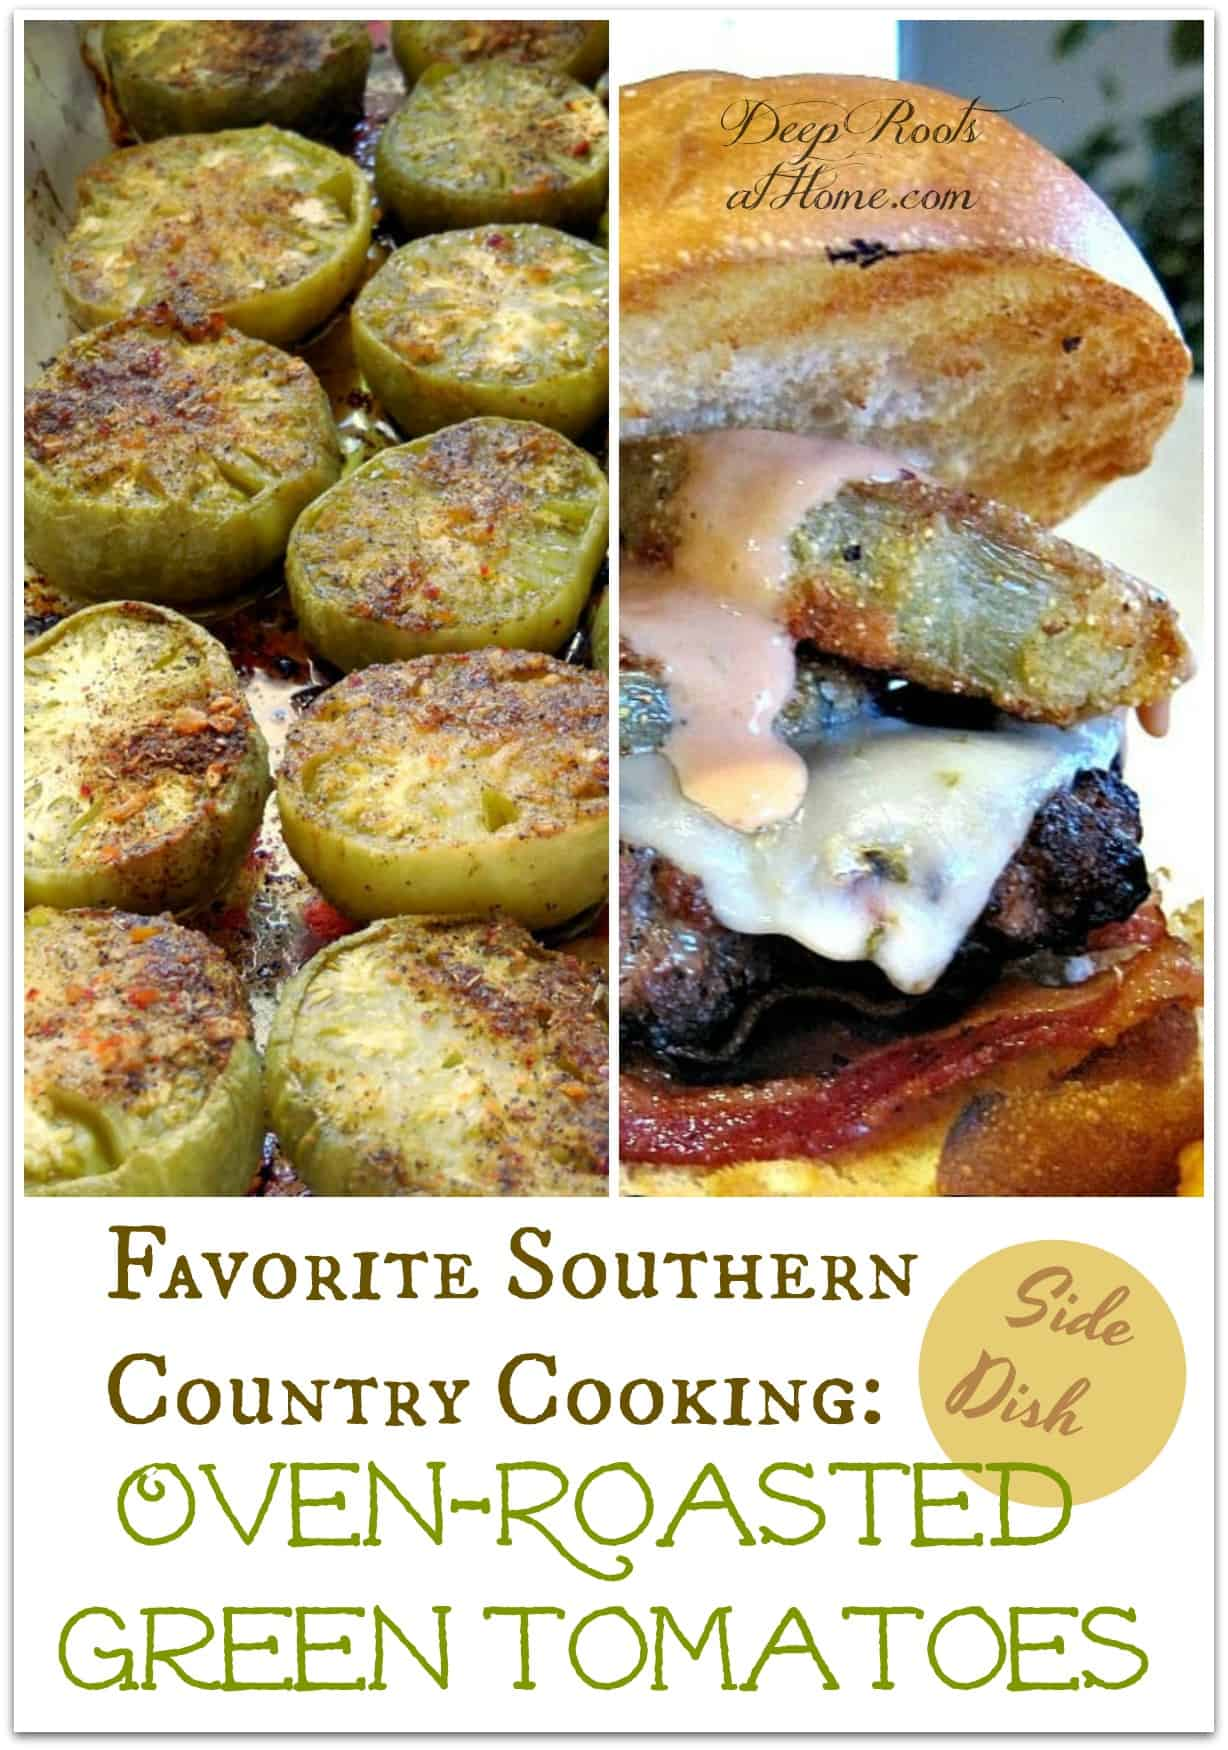 Favorite Southern Country Cooking: Oven-Roasted Green Tomatoes. Making a recipe of oven-roasted, breaded green tomatoes.. Pin image.